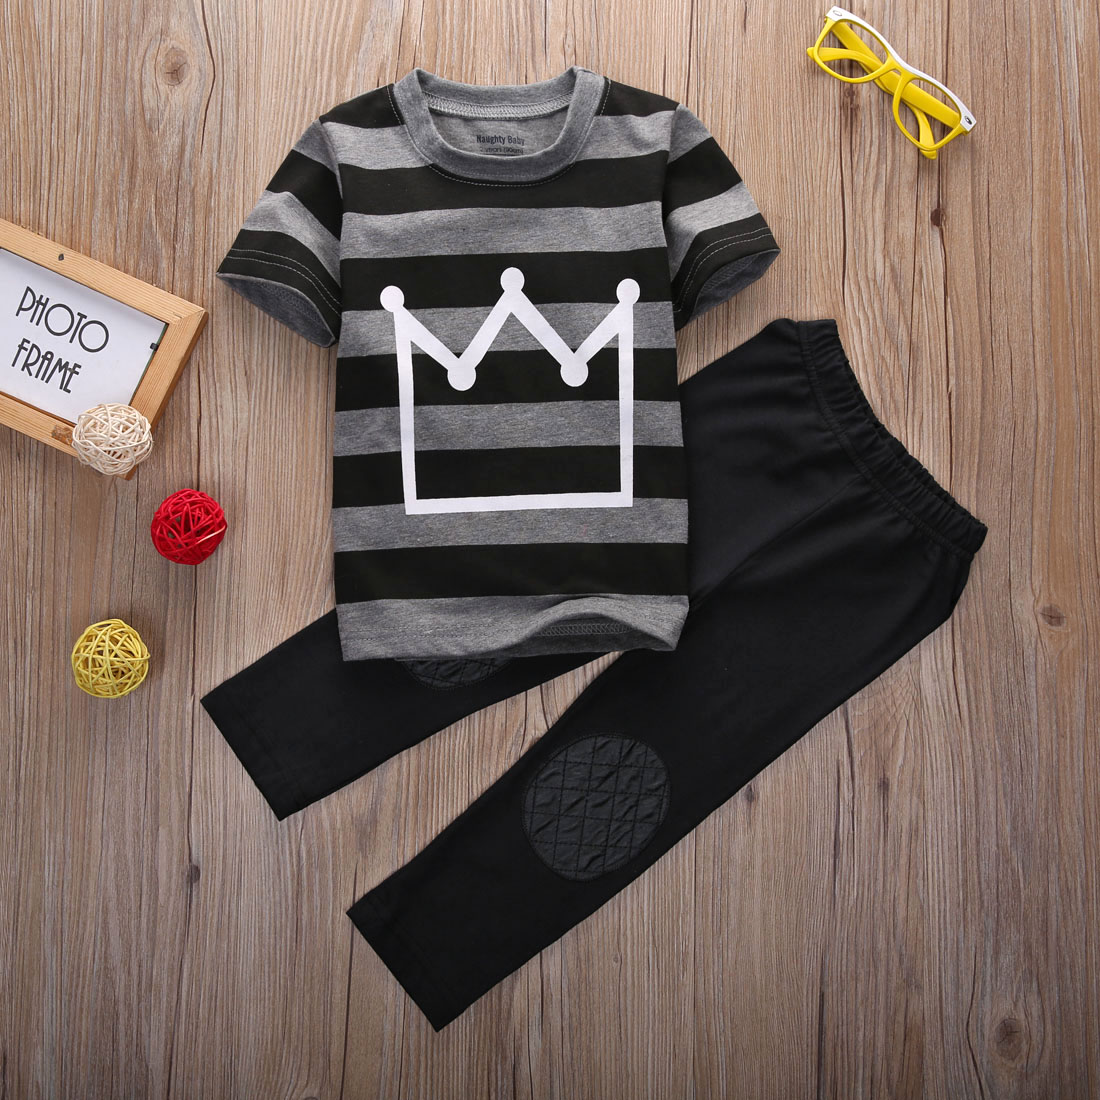 Summer Baby Toddler Kids Boys Clothes Striped Crown Printed Tops T shirt Pants 2PCS Outfits Tracksuit set 2 8T 2019 in Clothing Sets from Mother Kids